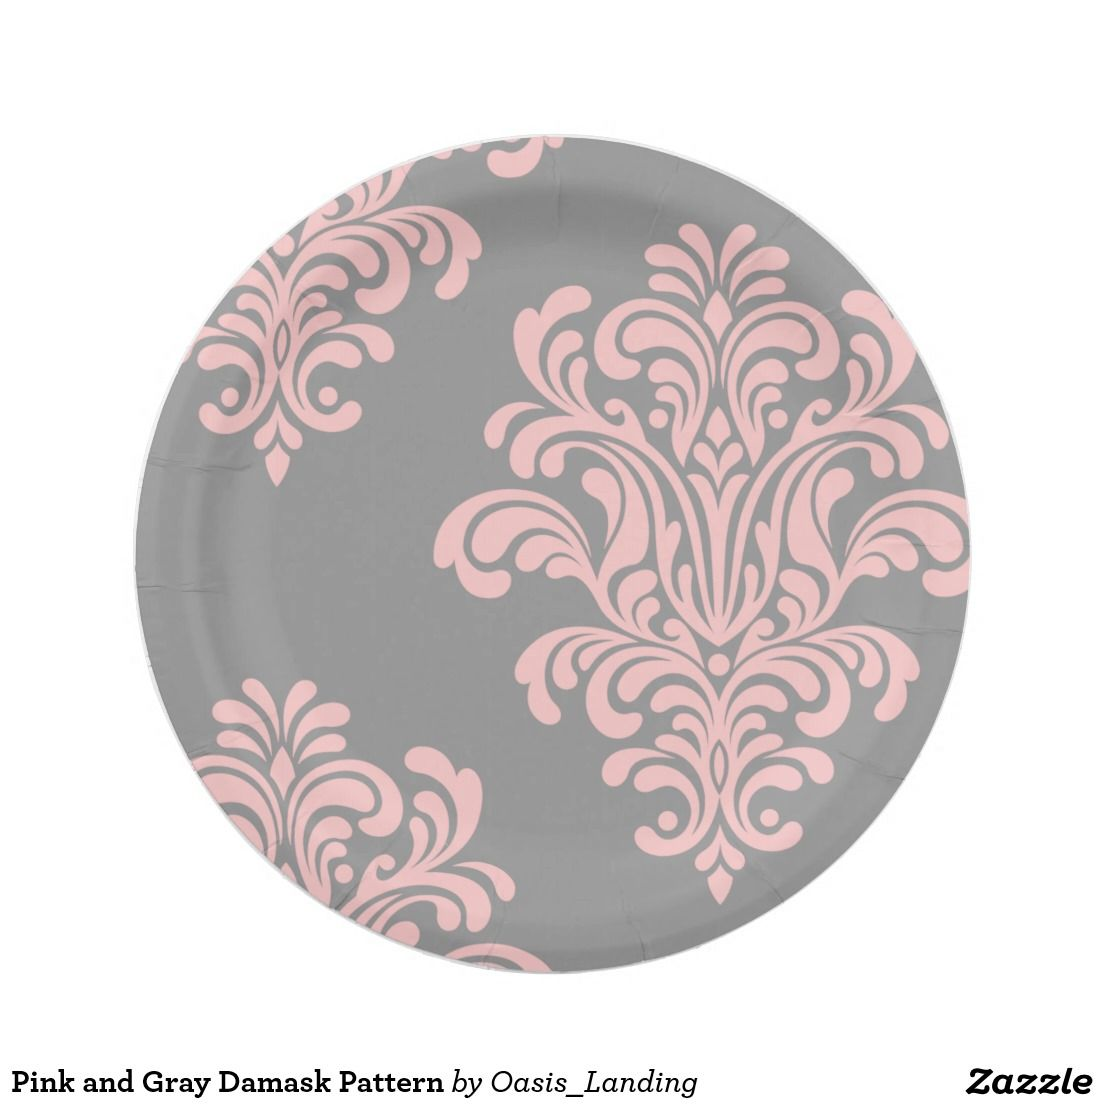 Pink and Gray Damask Pattern Paper Plate - A beautifully feminine design in pink damask over  sc 1 st  Pinterest & Pink and Gray Damask Pattern Paper Plate - A beautifully feminine ...